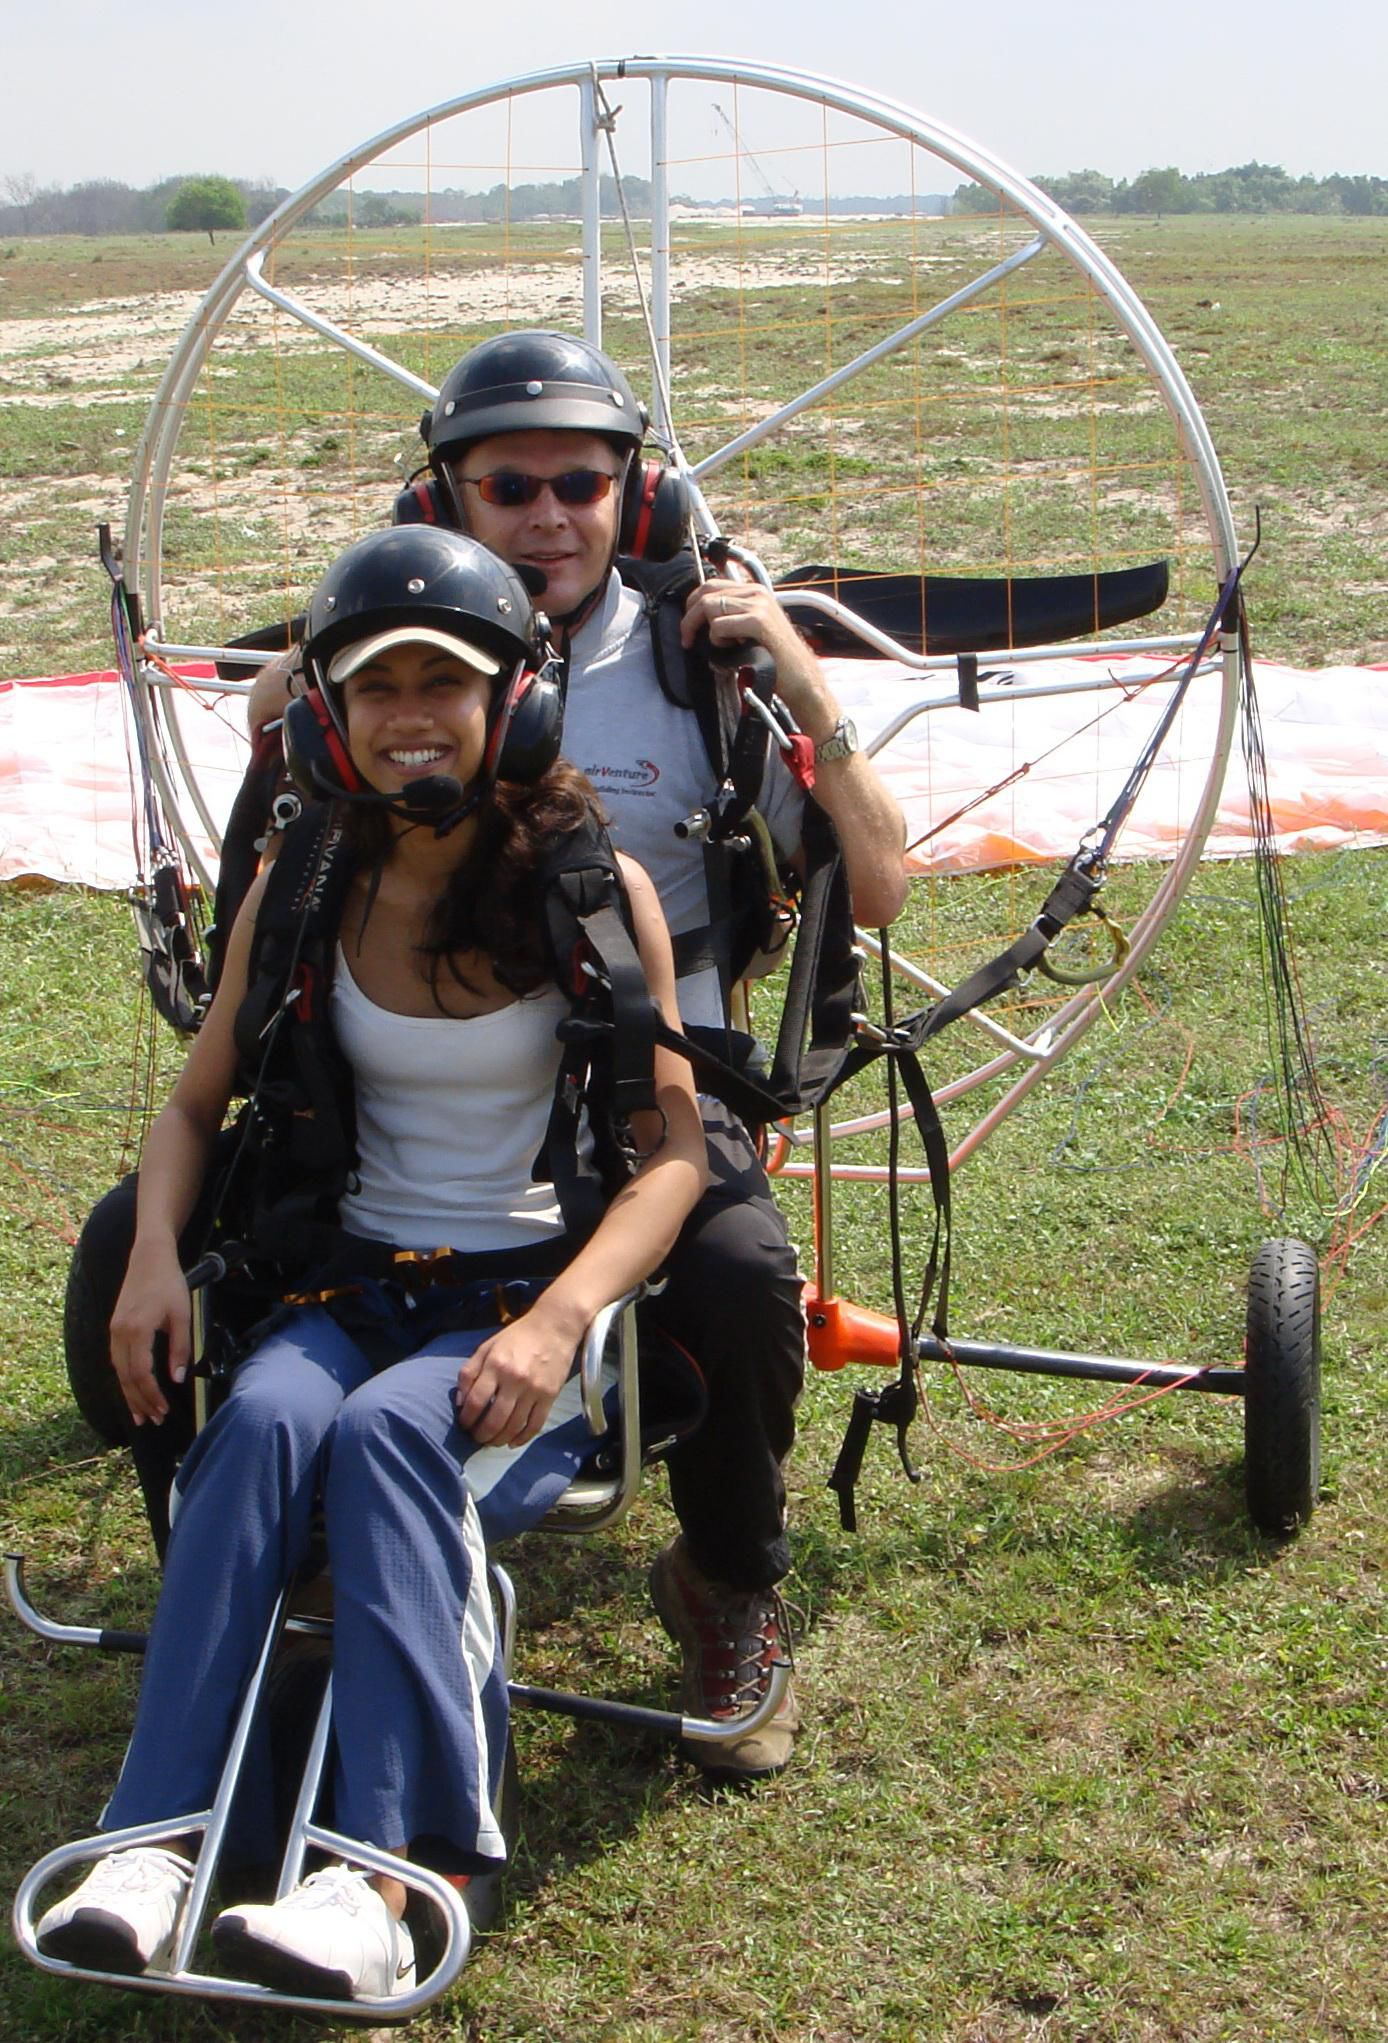 Paramotor Tandem Trike for sale ready to fly